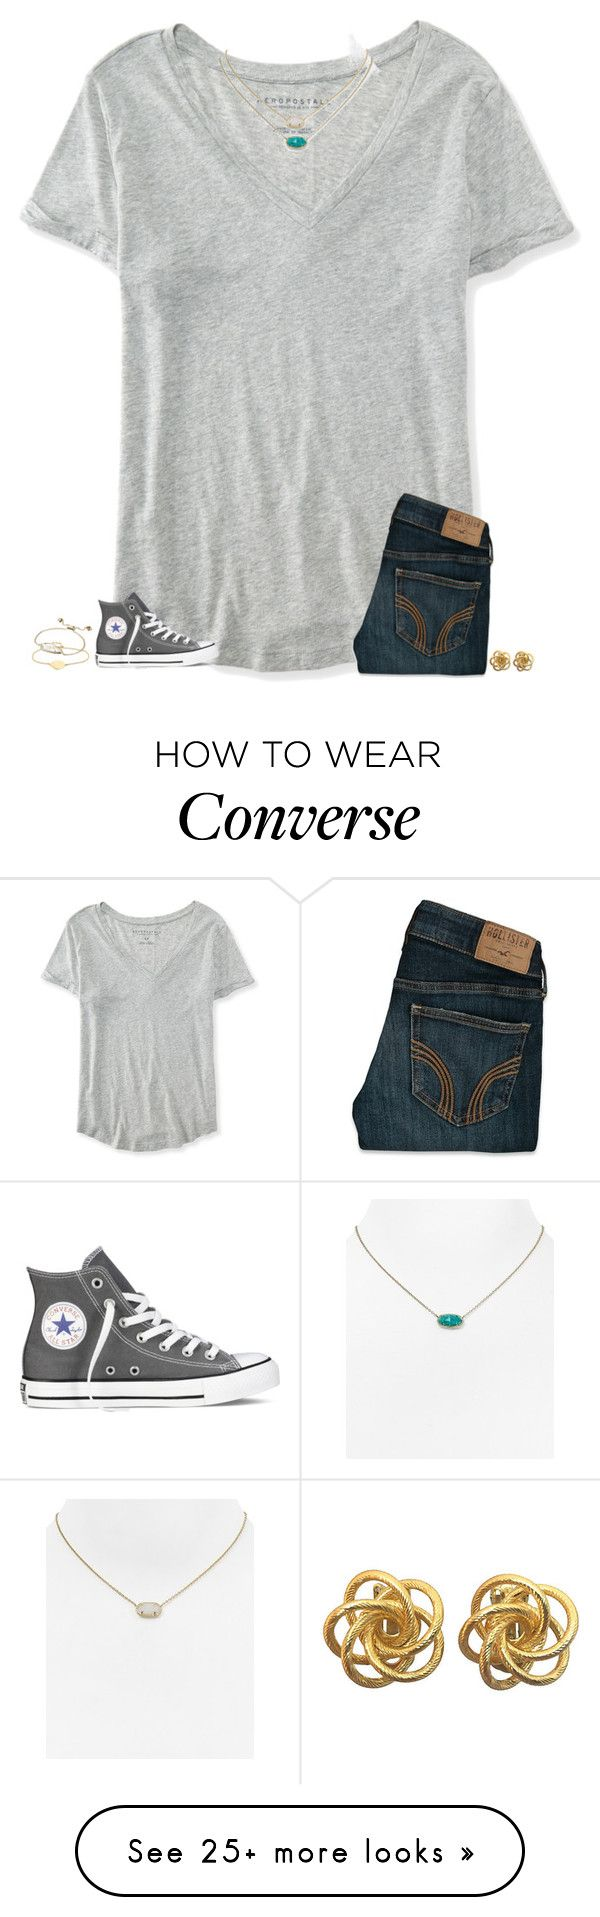 """""""cory's eyes are like the jungle he smiles it's like the radio"""" by secfashion13 on Polyvore featuring Aéropostale, Hollister Co., Kendra Scott, Converse, Monica Vinader, women's clothing, women, female, woman and misses"""